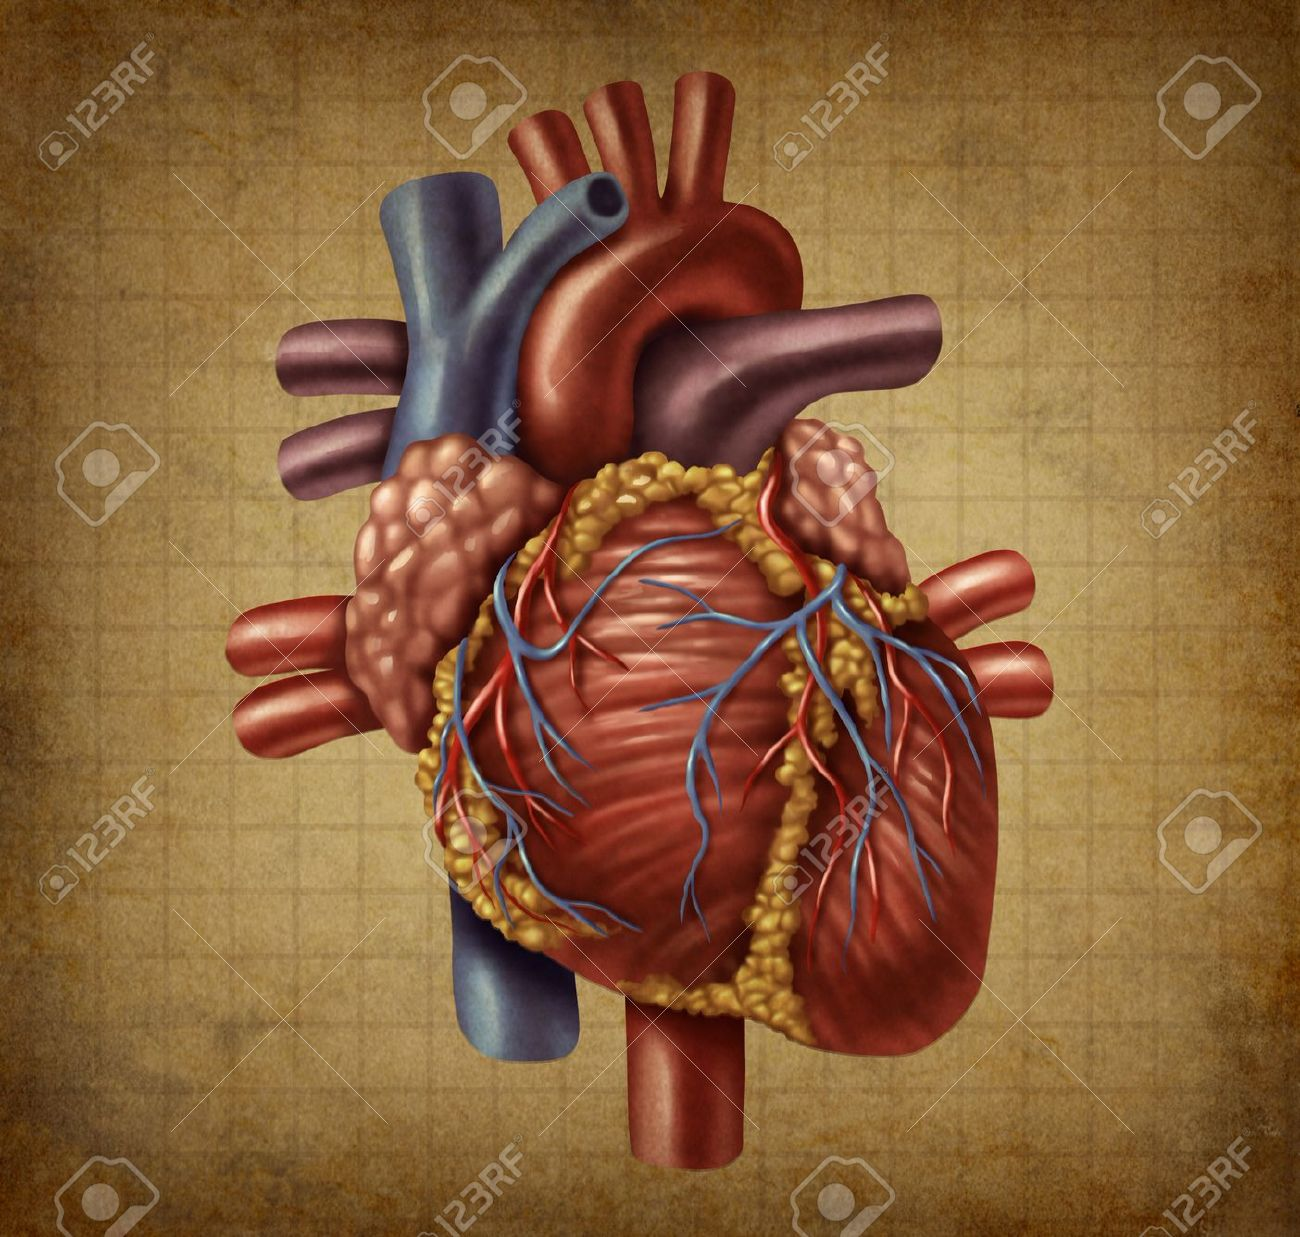 Human Heart In An Old Vintage Grunge Medical Document Texture ...